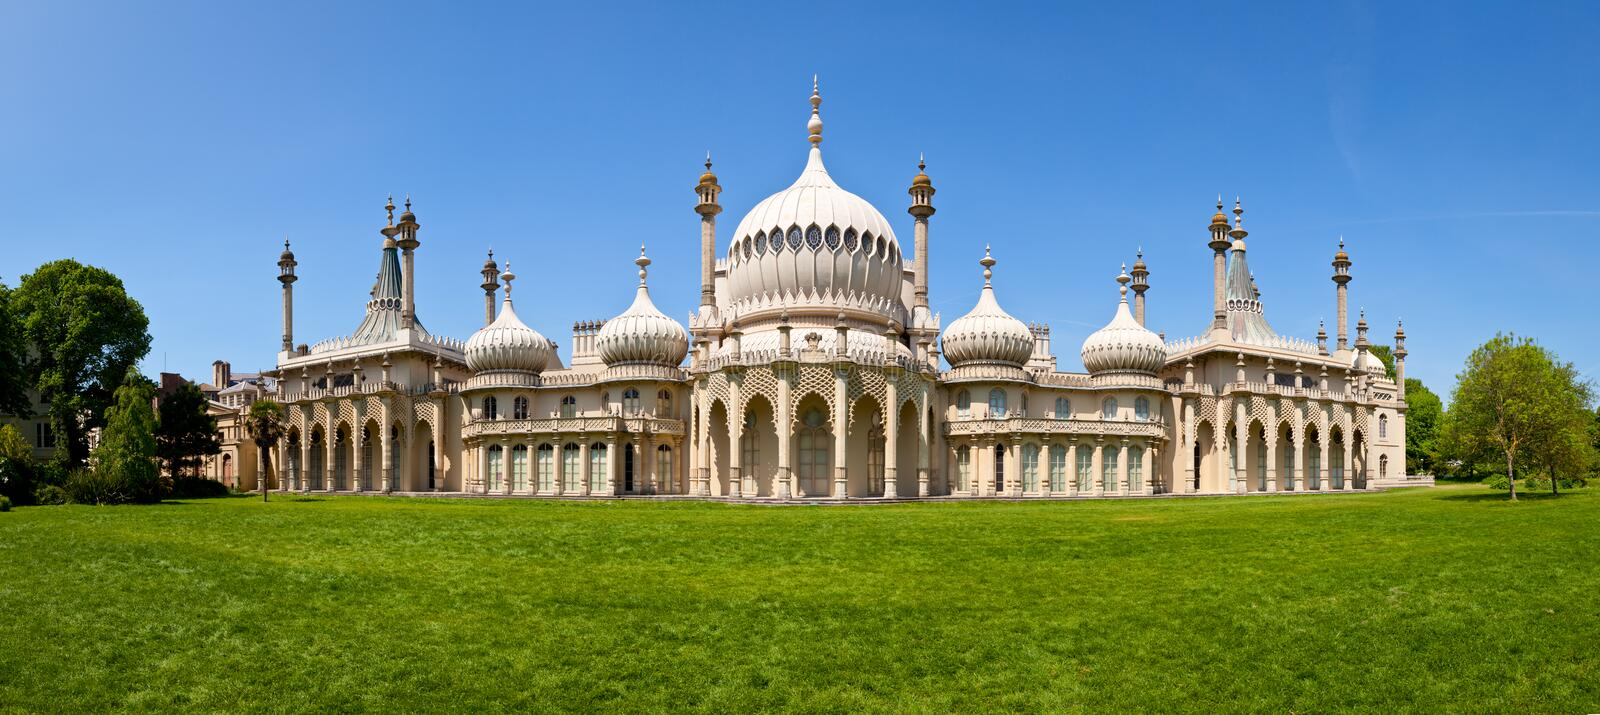 Brighton Royal Pavilion stockfoto